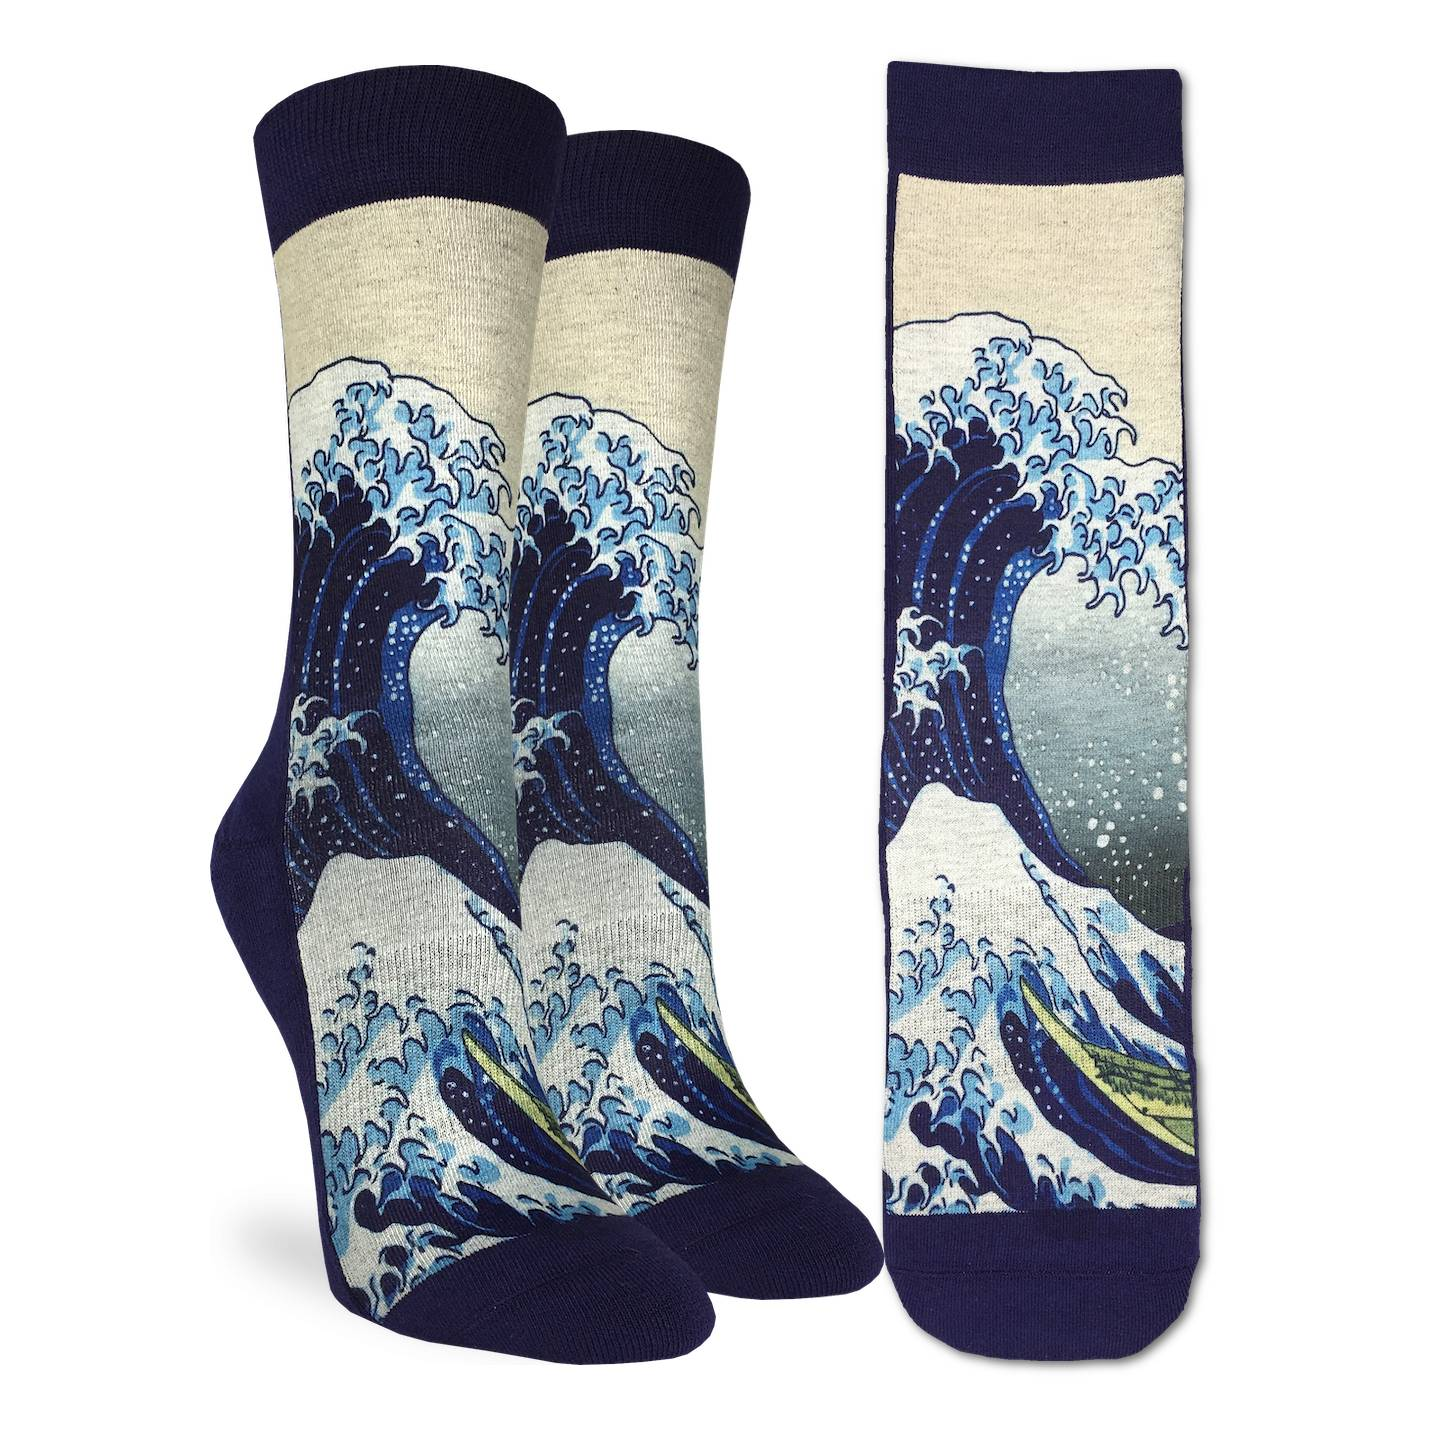 Good Luck Womens Active Fit - The Great Wave of Kanagawa